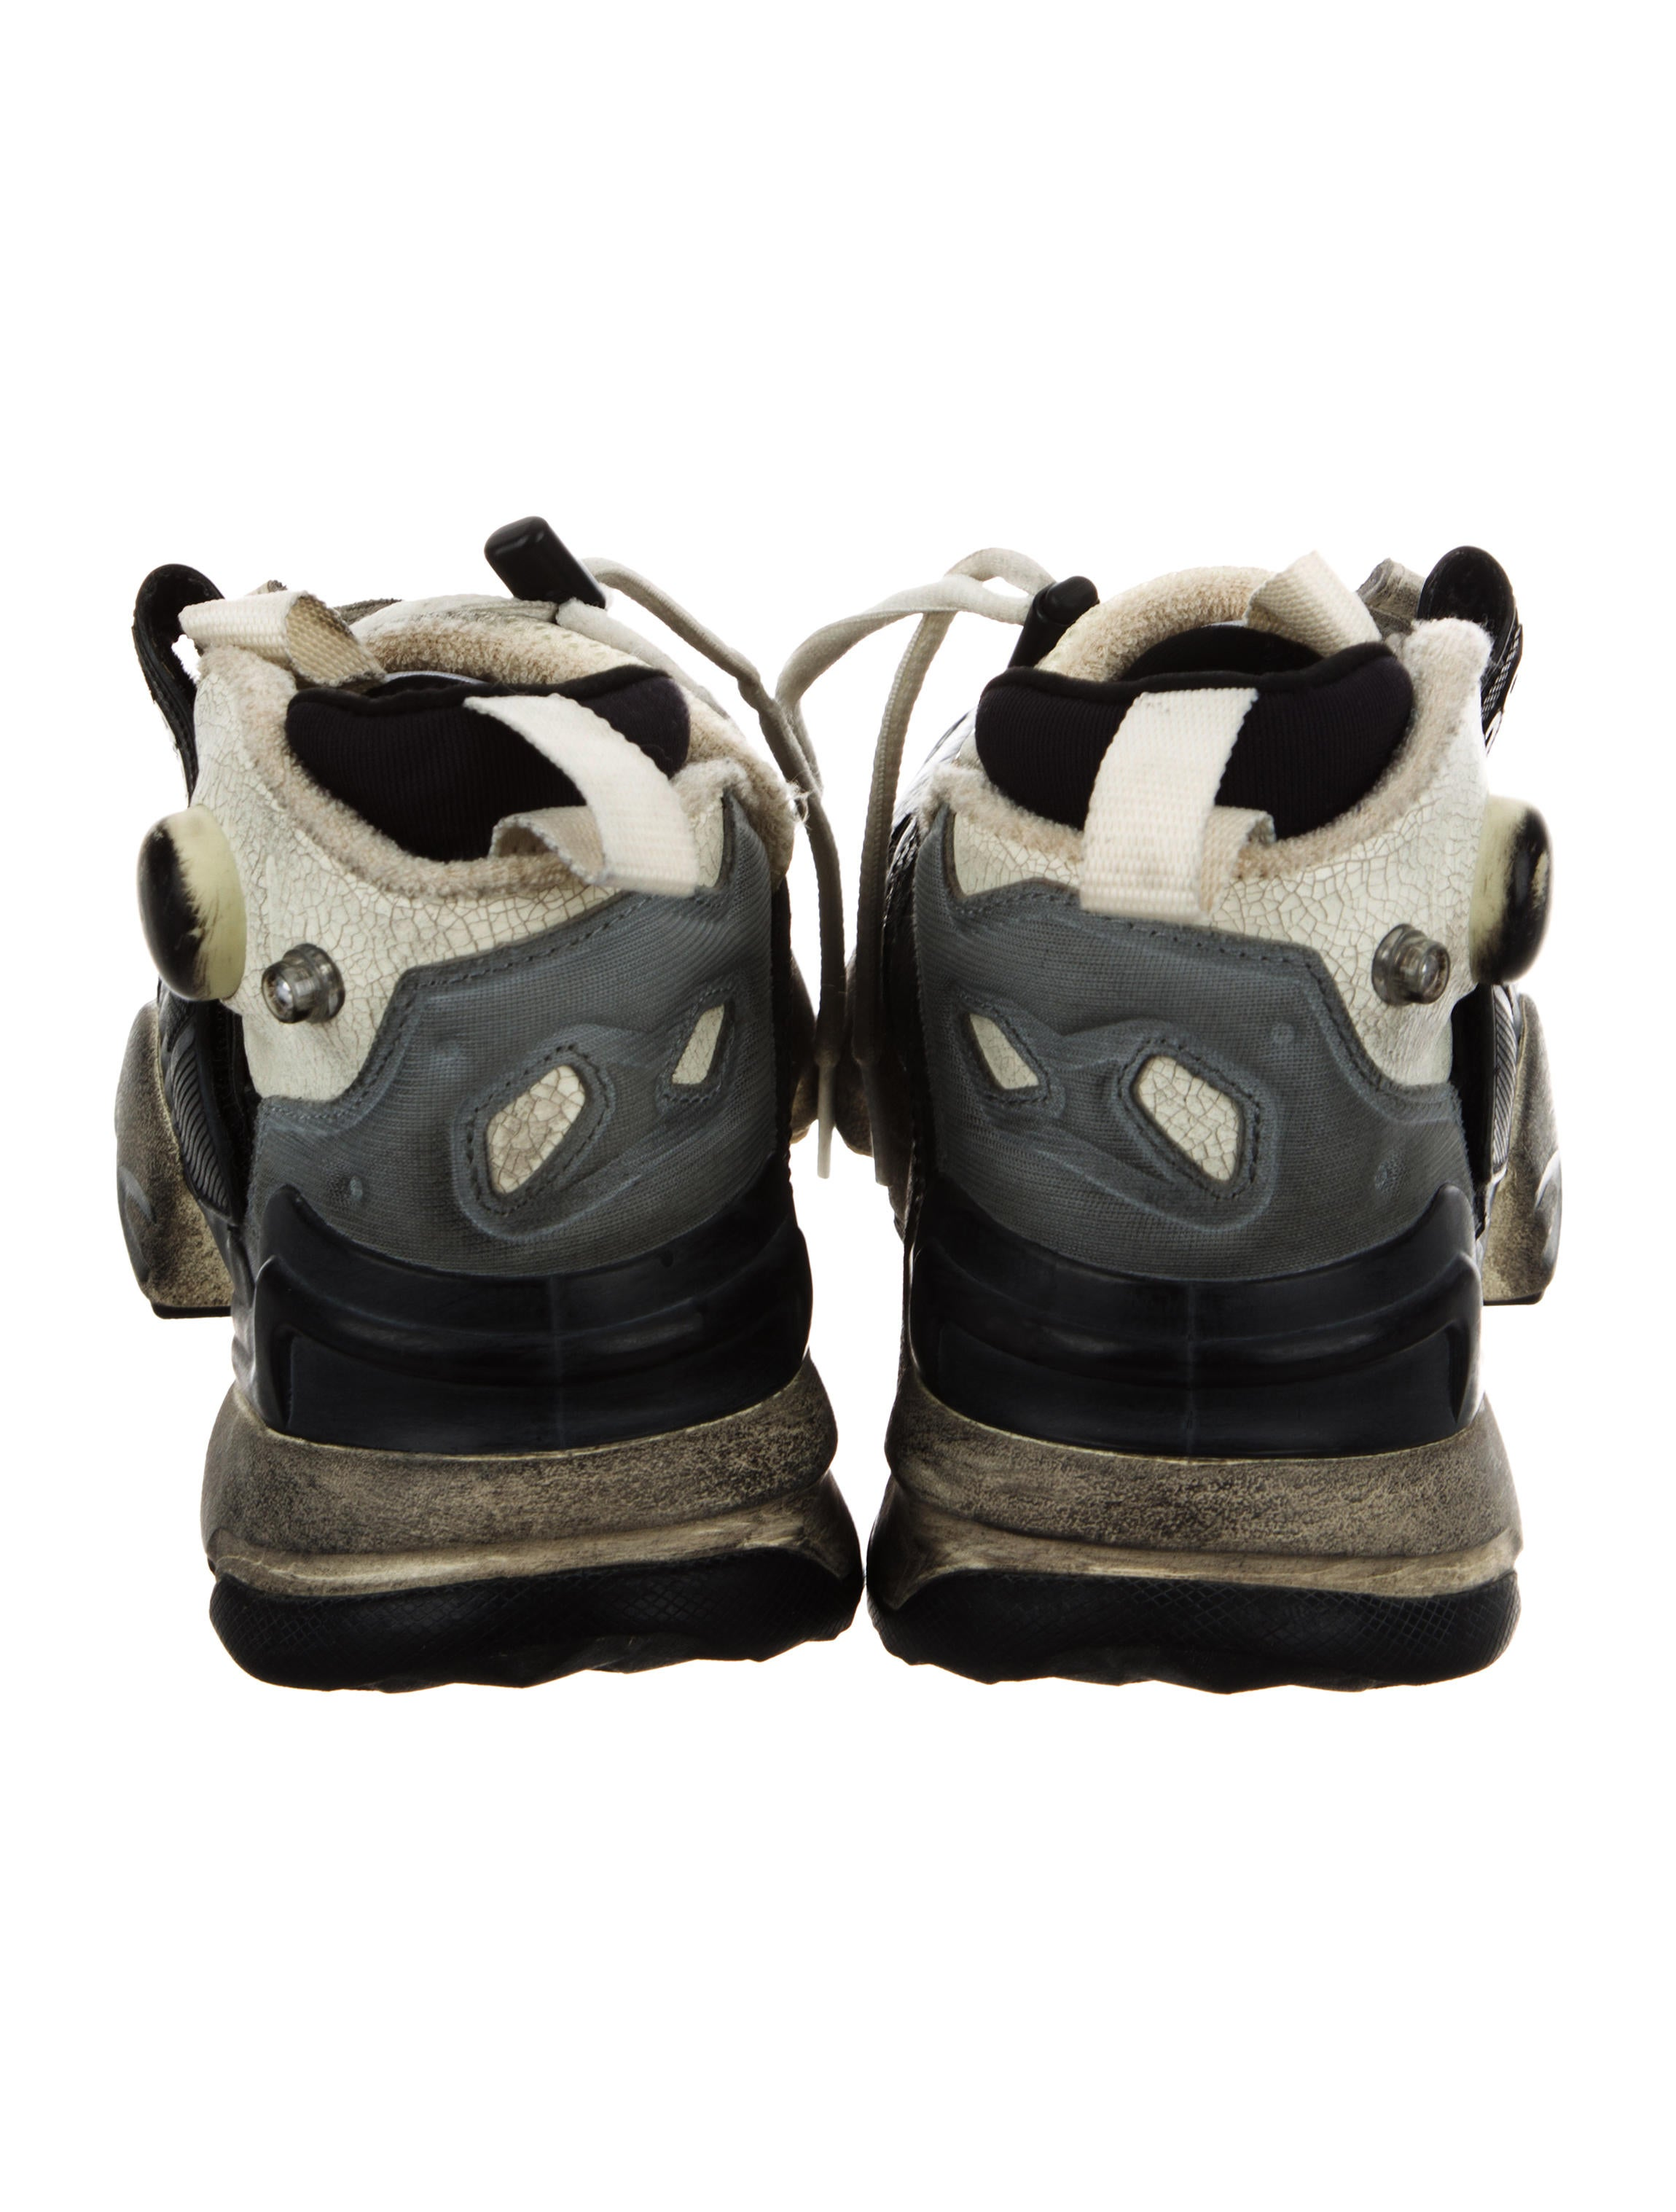 Vetements x Reebok Genetically Modified Pump Distressed